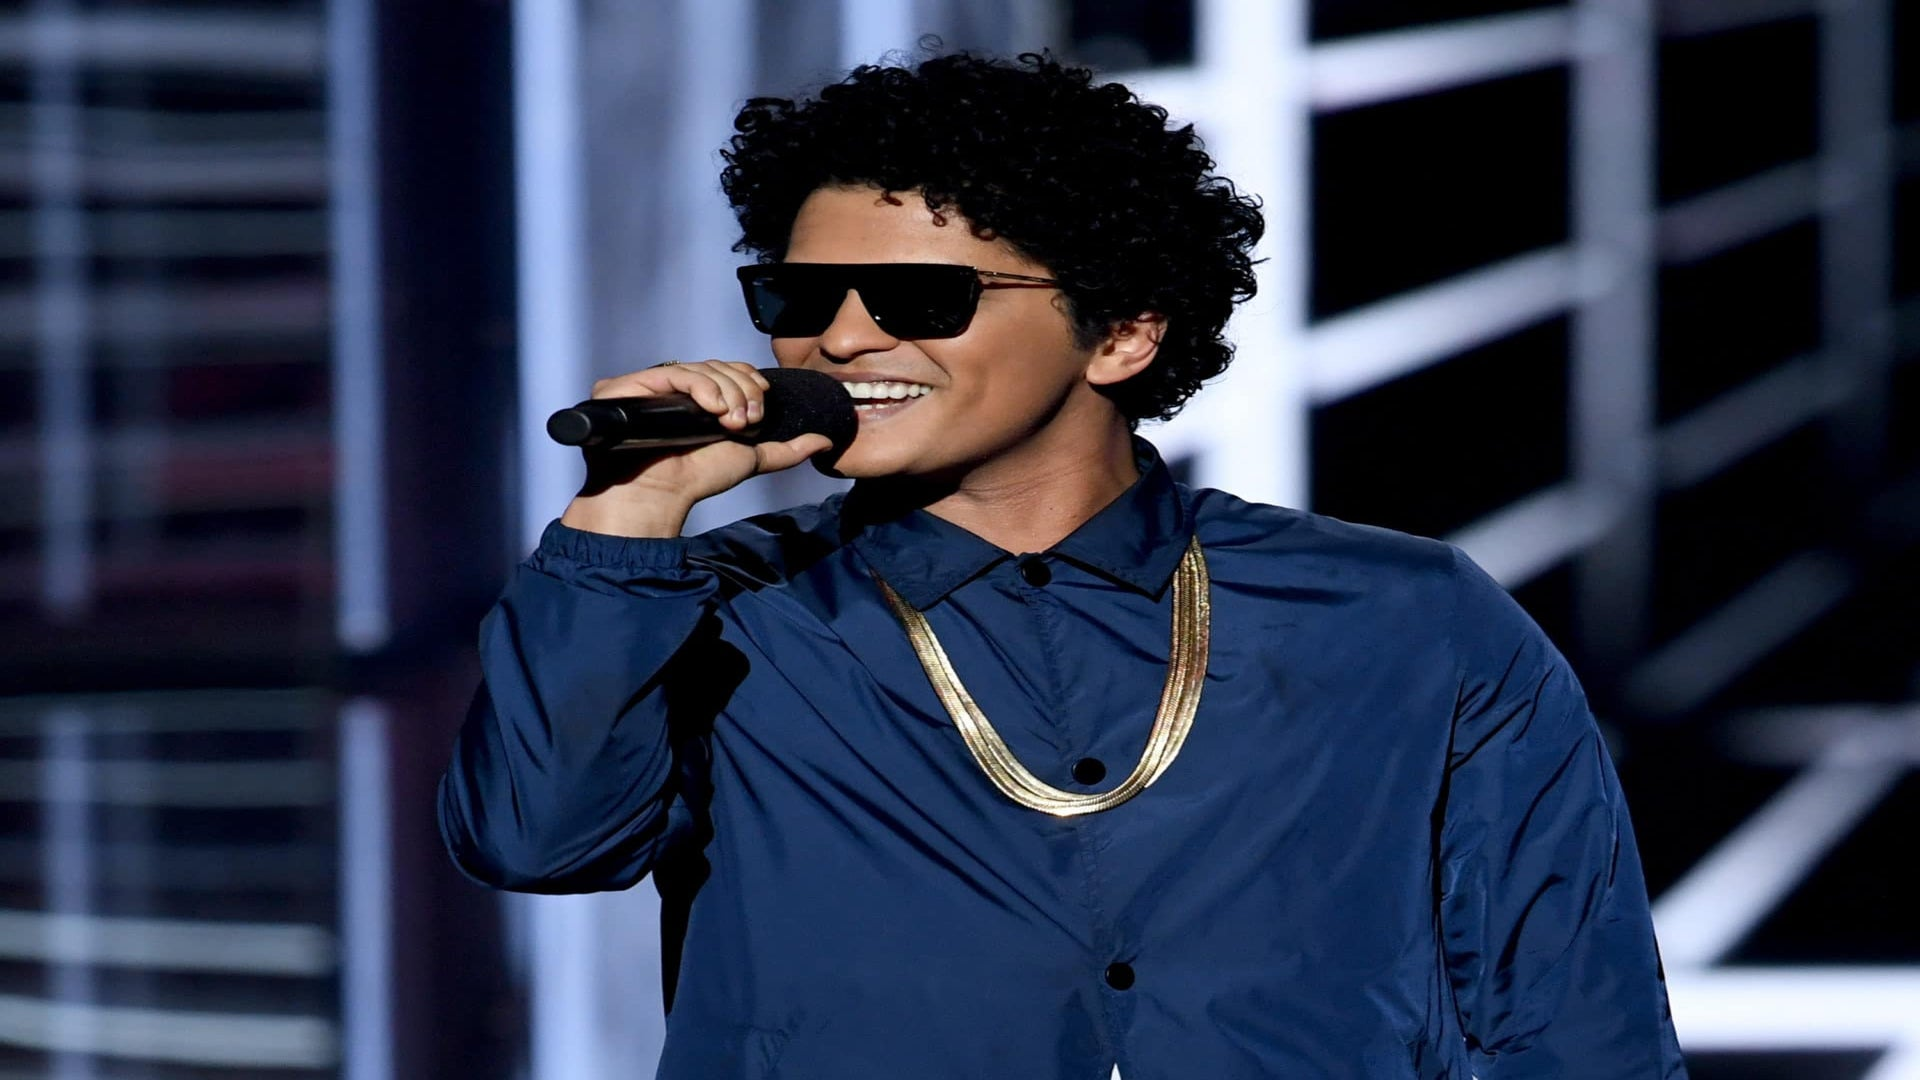 Bruno Mars Gifts His Band '24K Magic' With $55K Watches